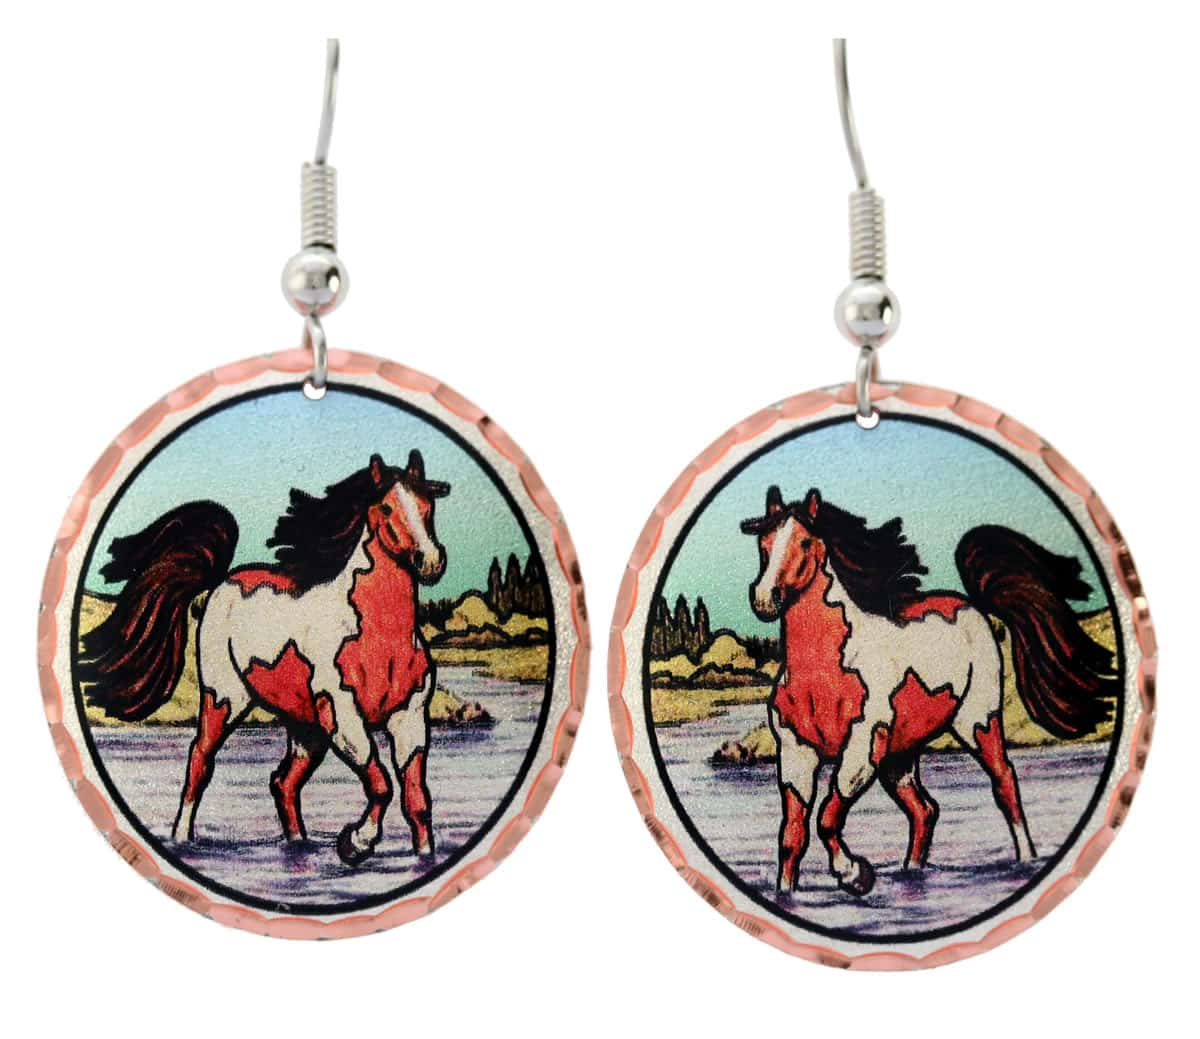 Brown and white spotted horse earrings with blue sky color background